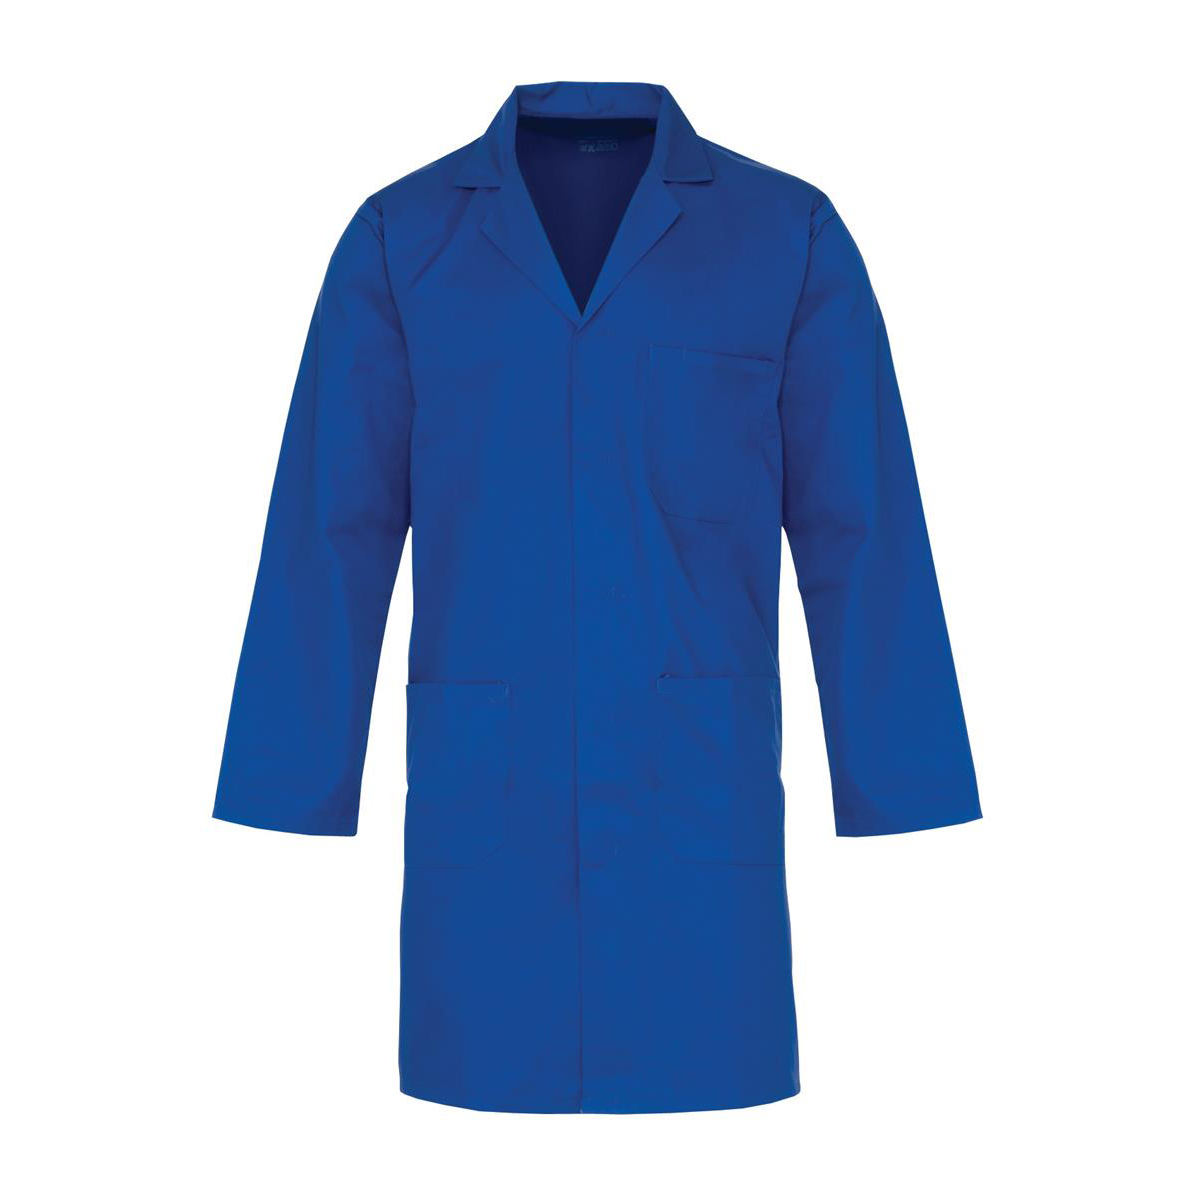 Click Lab Coat Polycotton with 3 Pockets Medium Navy Ref PCWCN40 Approx 3 Day Leadtime